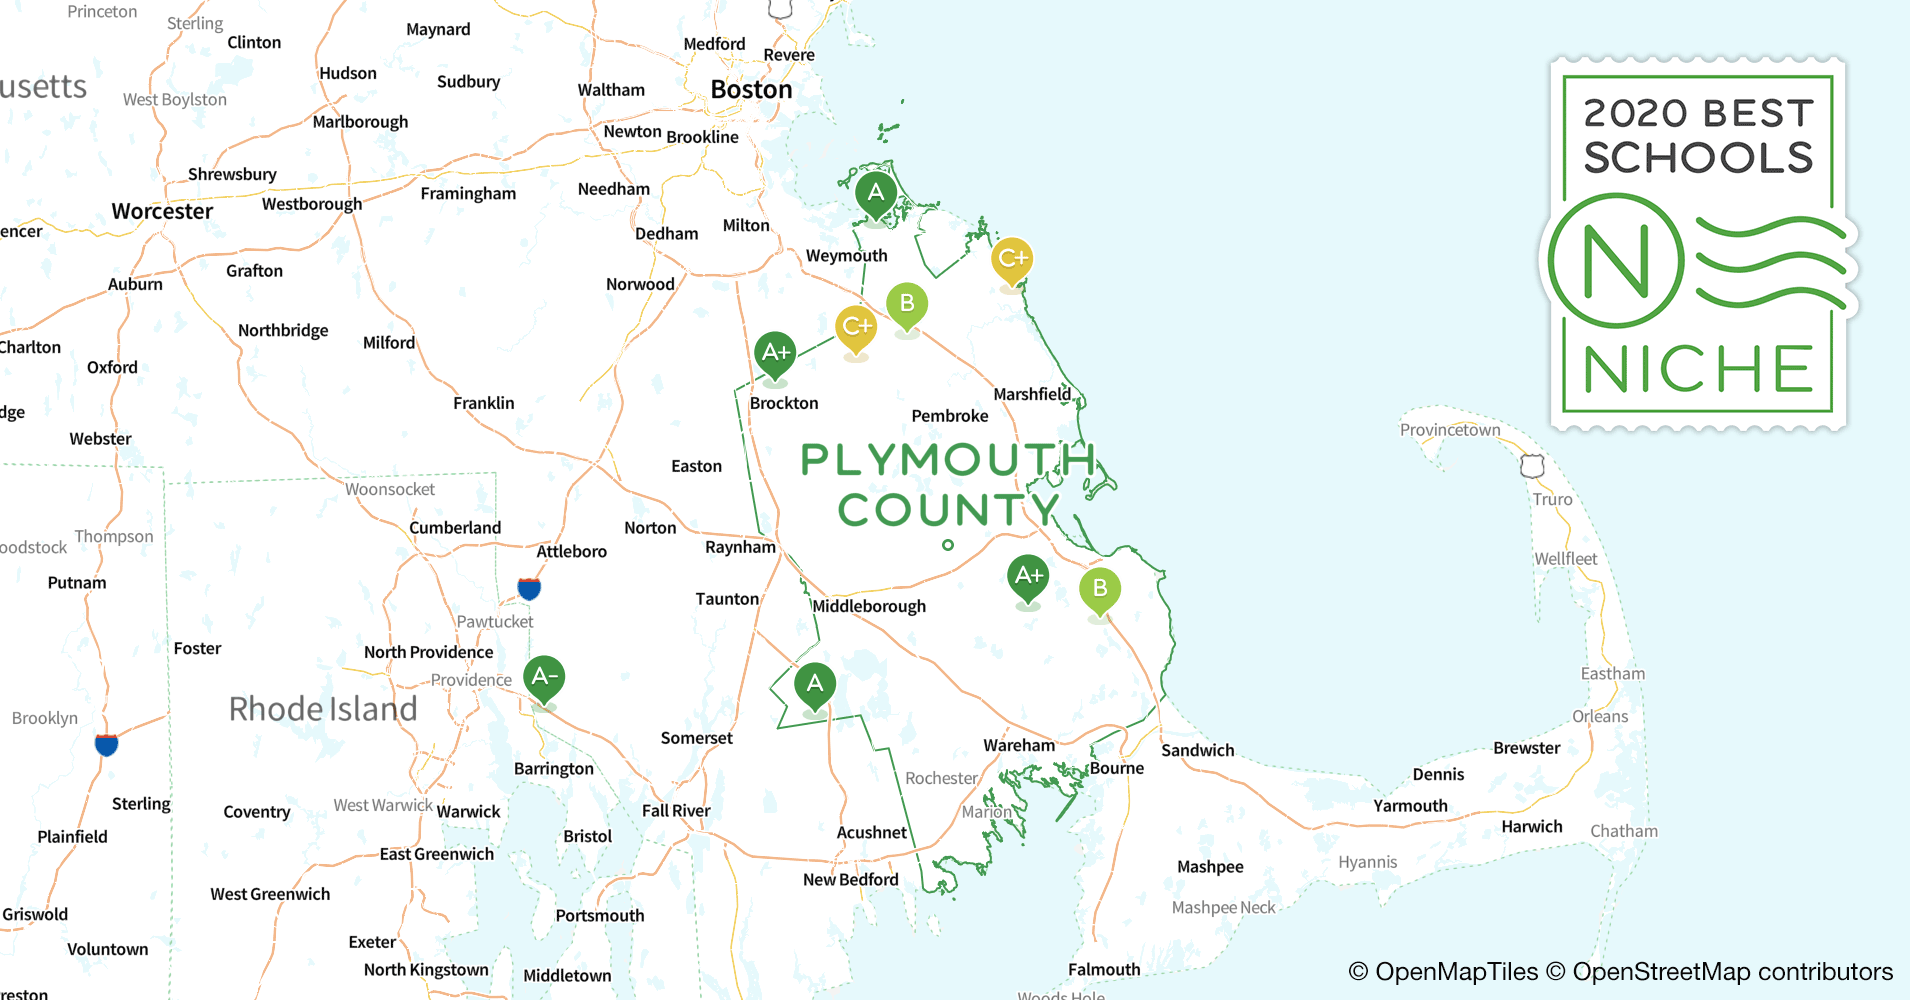 2020 Best High Schools in Plymouth County, MA - Niche